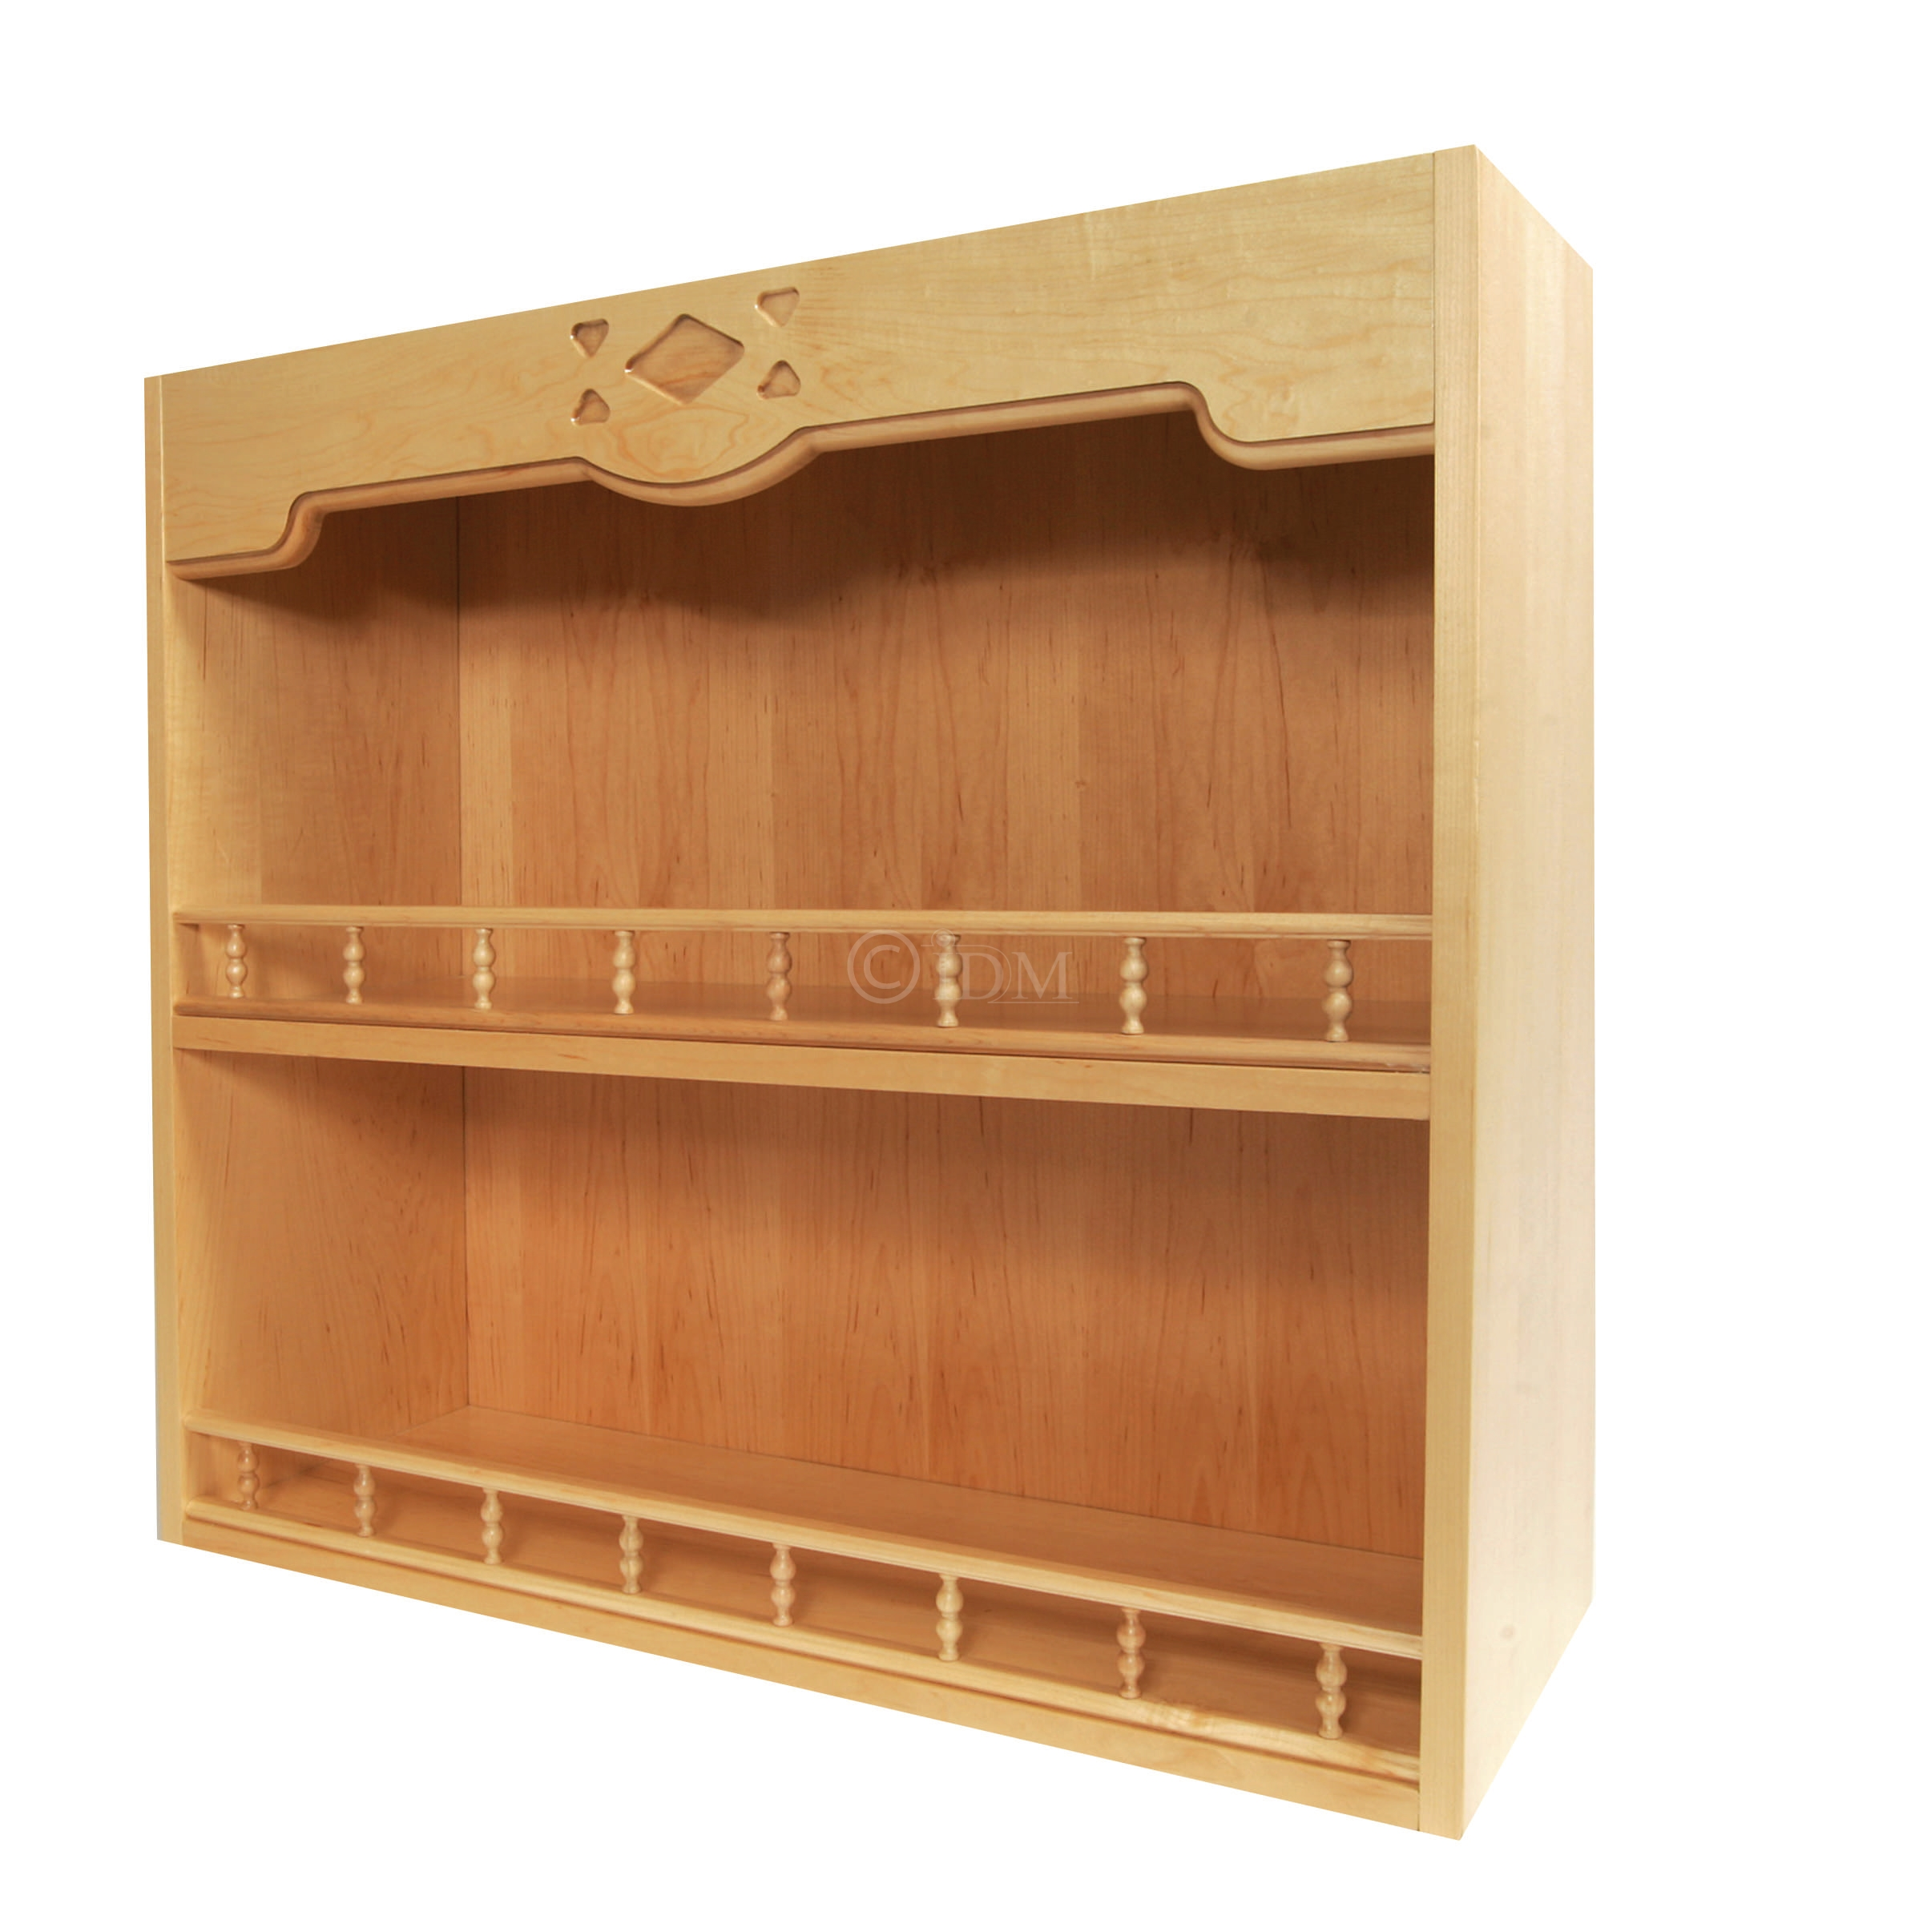 D9C Wall unit display | In Door Manufacturing